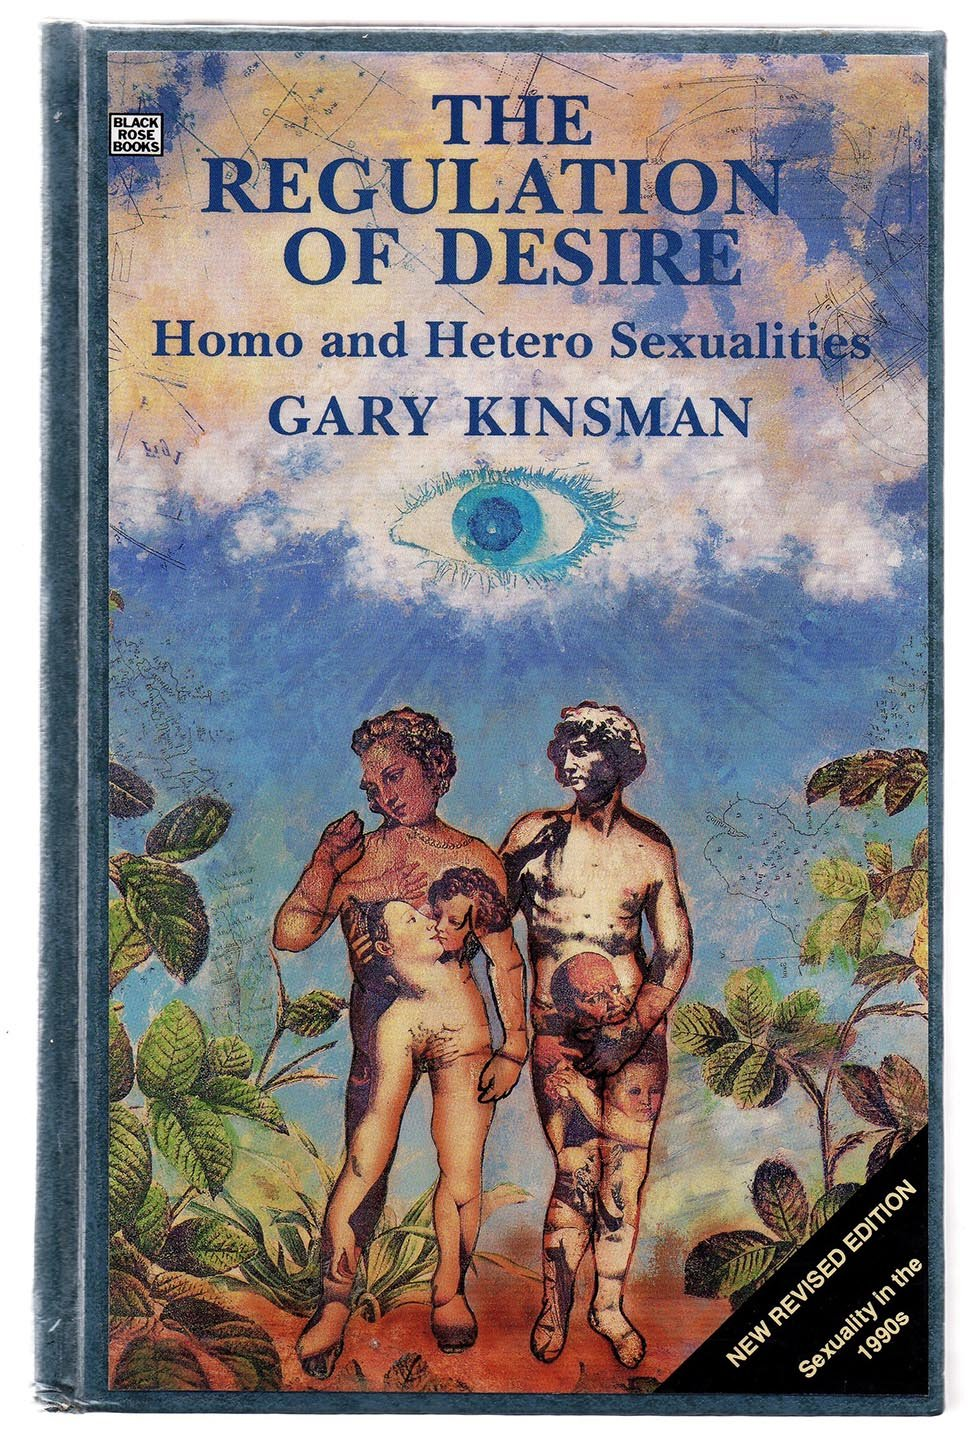 The Regulation of Desire: Homo.e and Hetero Sexualities